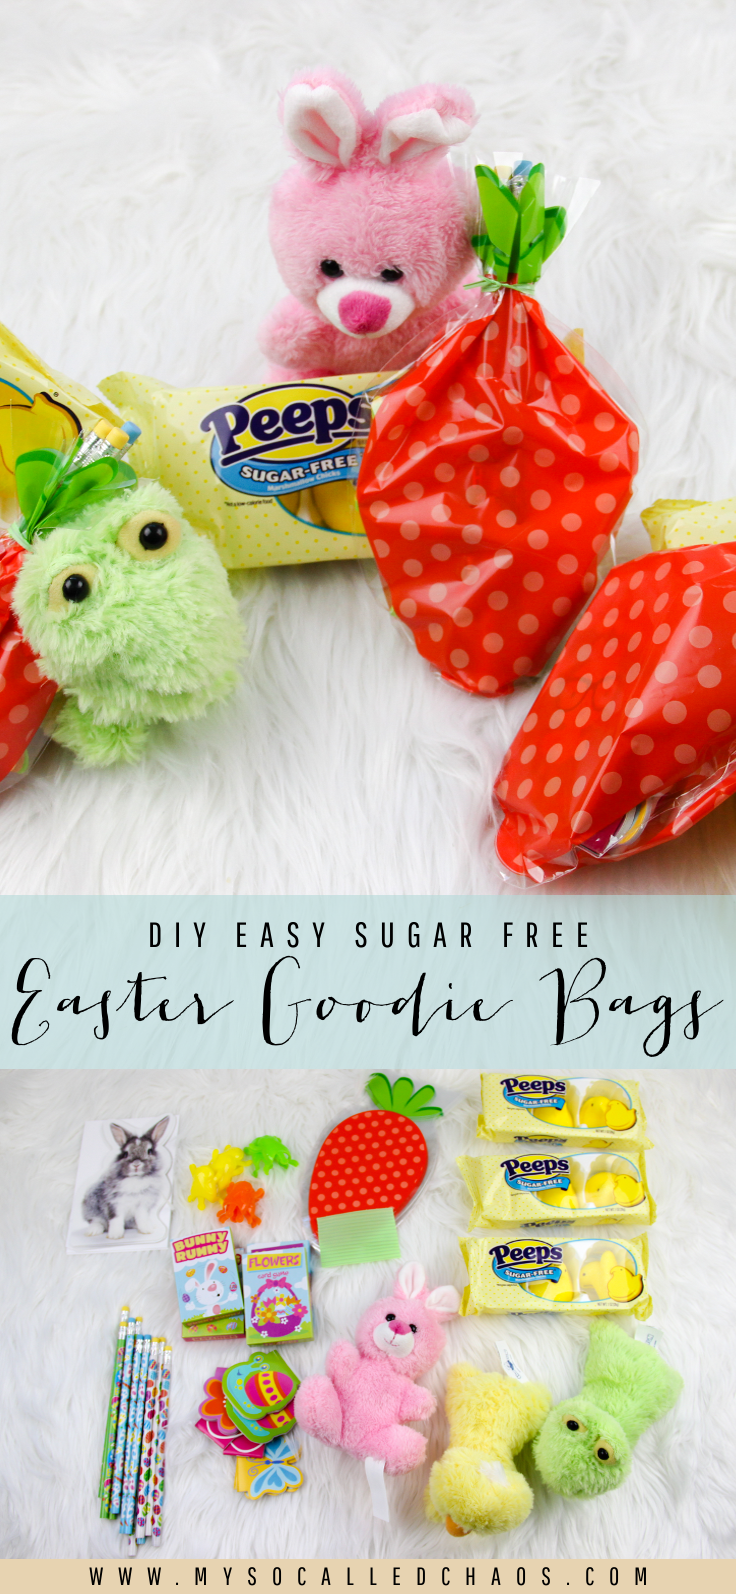 Diy easy 5 sugar free easter goodie bags peeps giveaway my diy easy sugar free easter goodie bags with sugar free peeps want negle Gallery